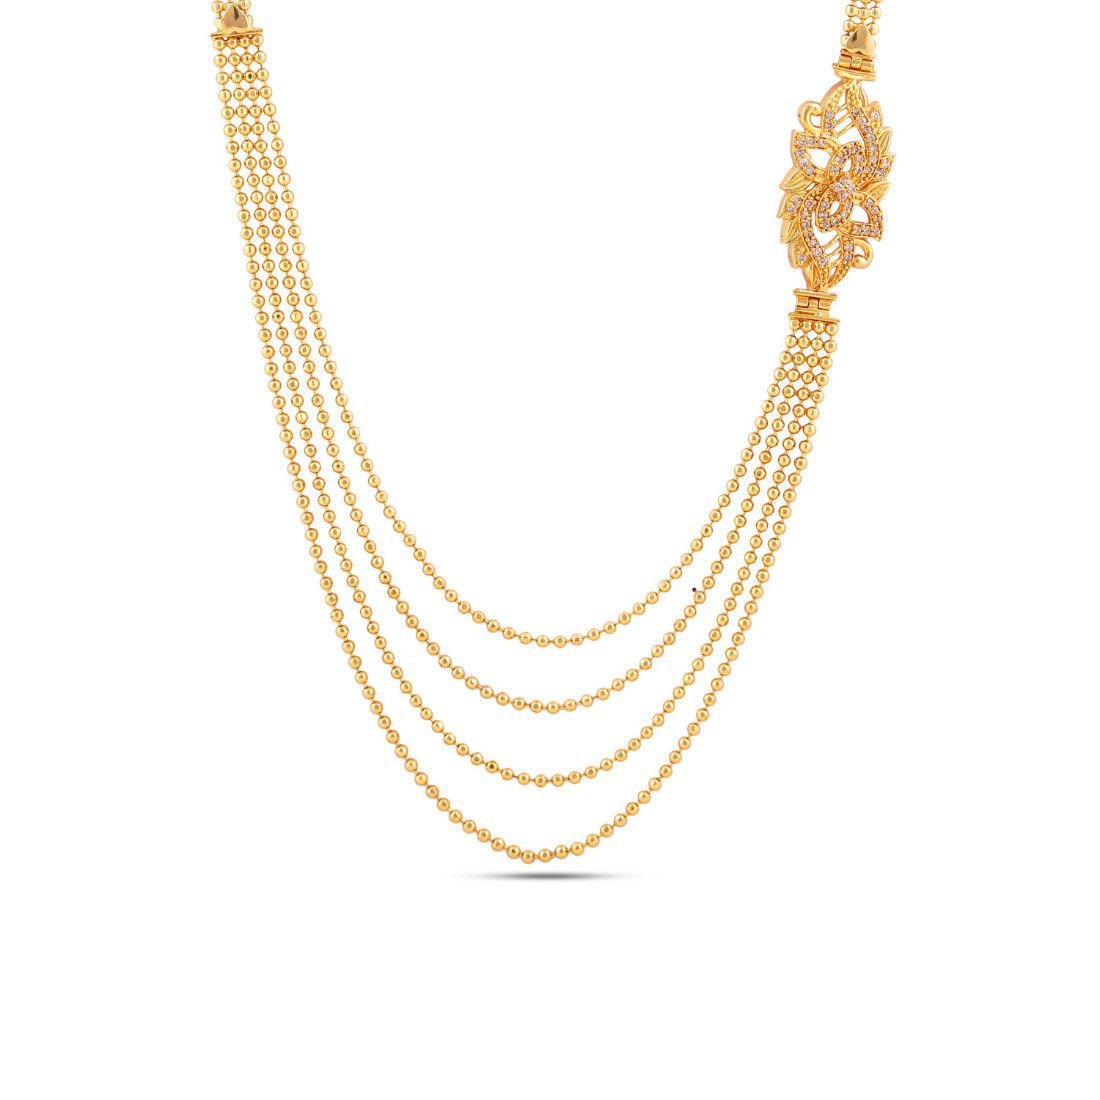 Maalyaa Brass Gold Plated Ad Long Necklace for Women & Girls